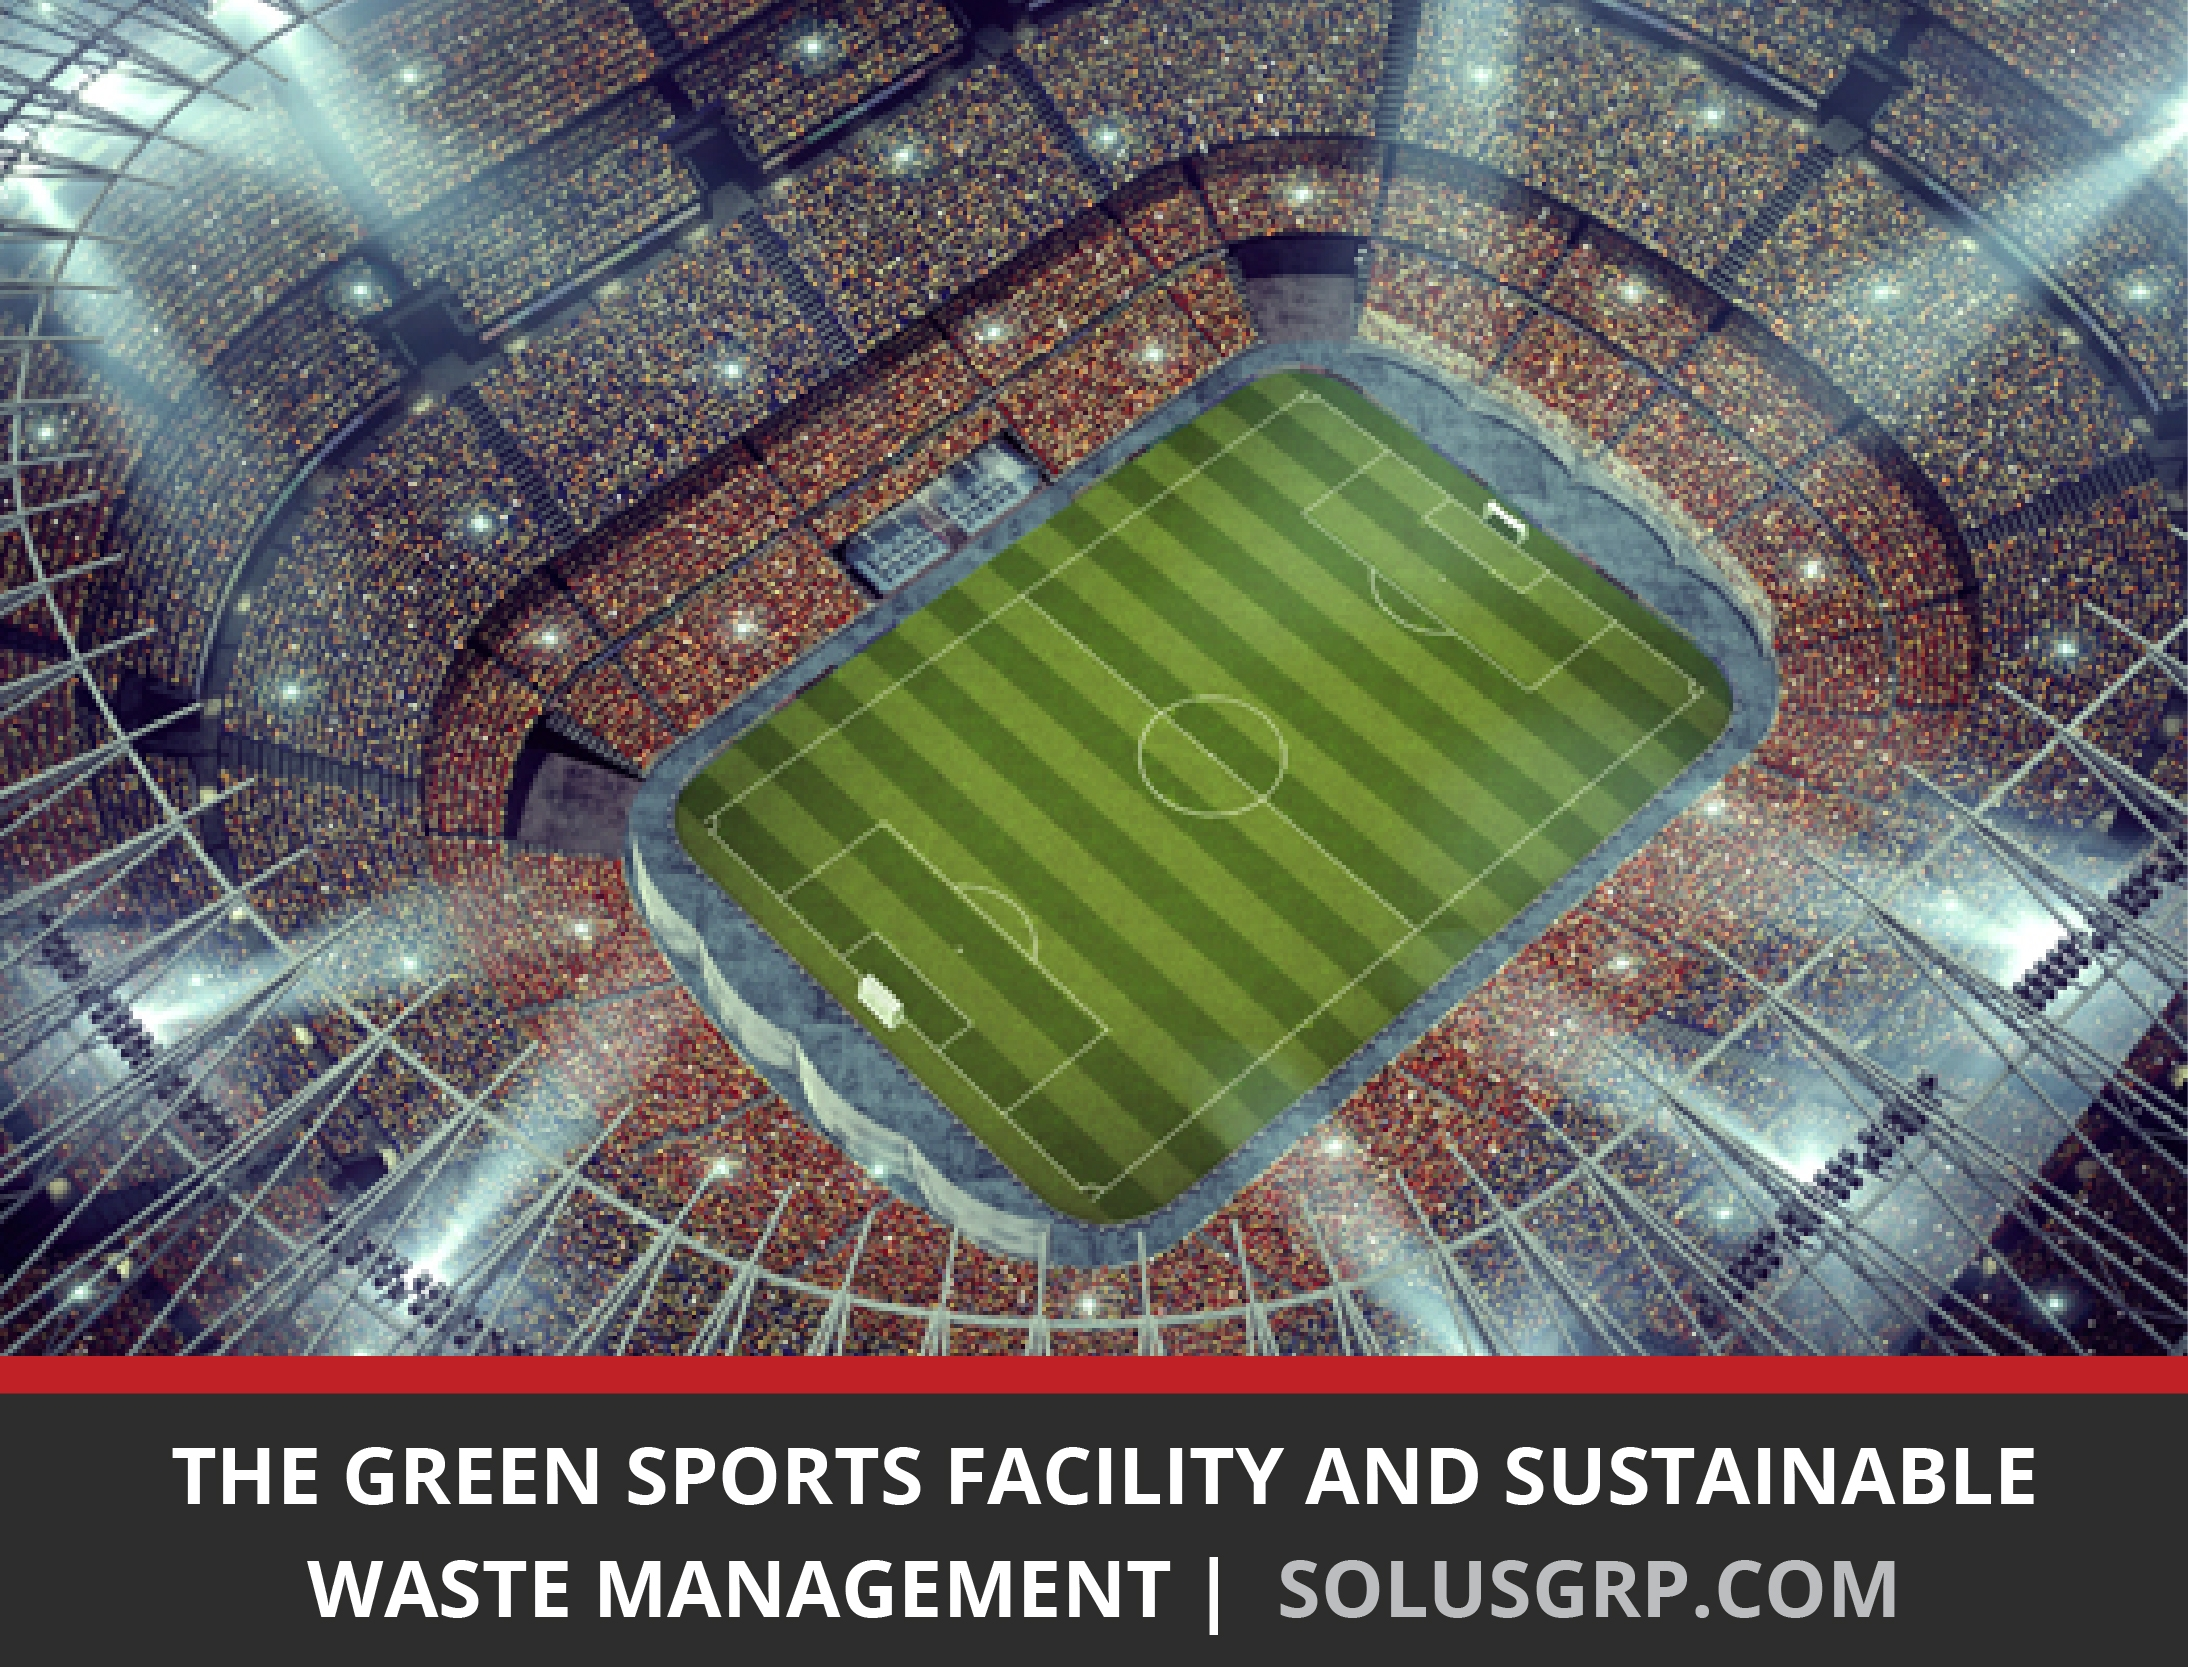 Sustainable Waste Management in the Green Sports Facility